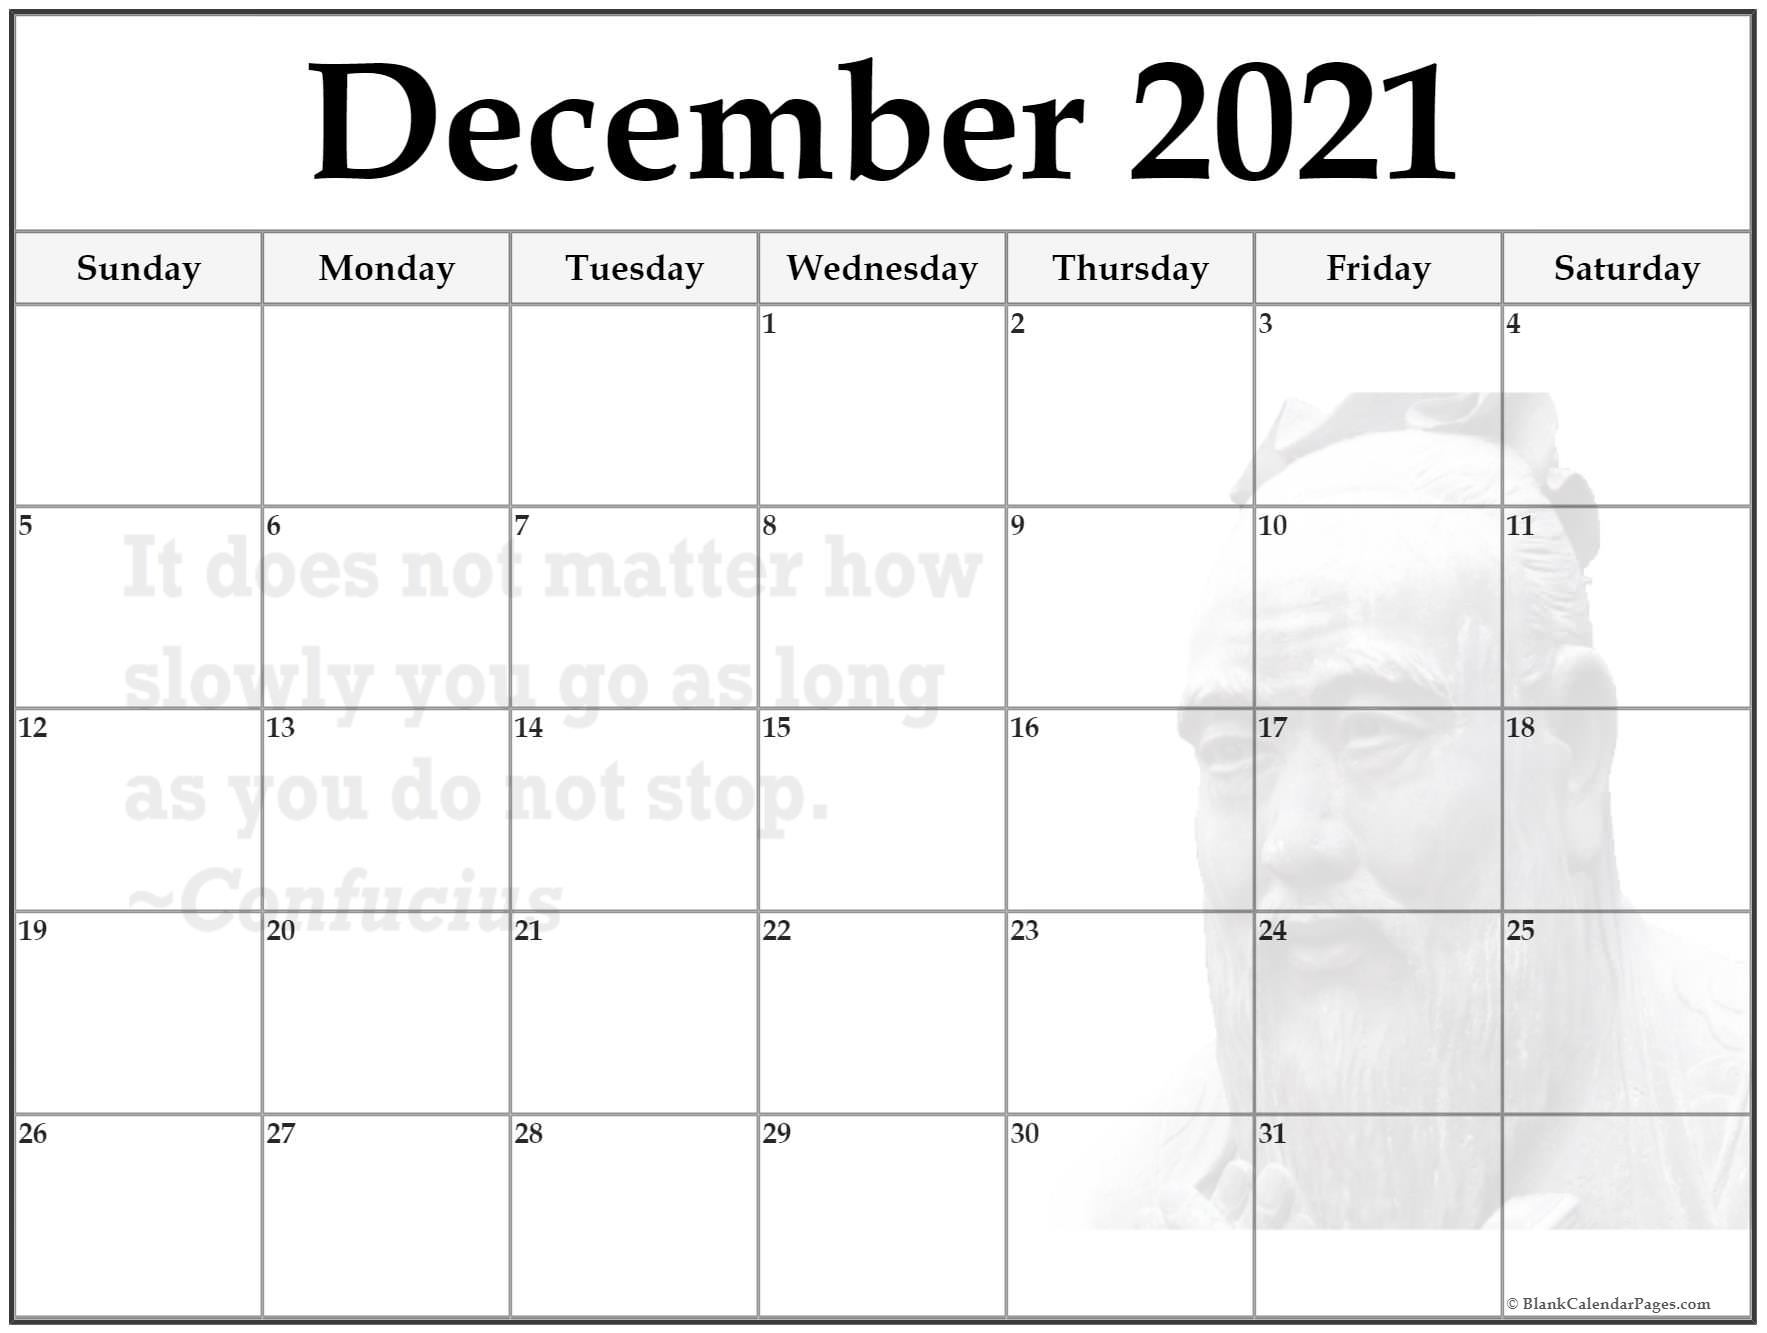 December 2021 monthly calendar template. It does not matter how slowly you go as long as you don't stop ~Confucius